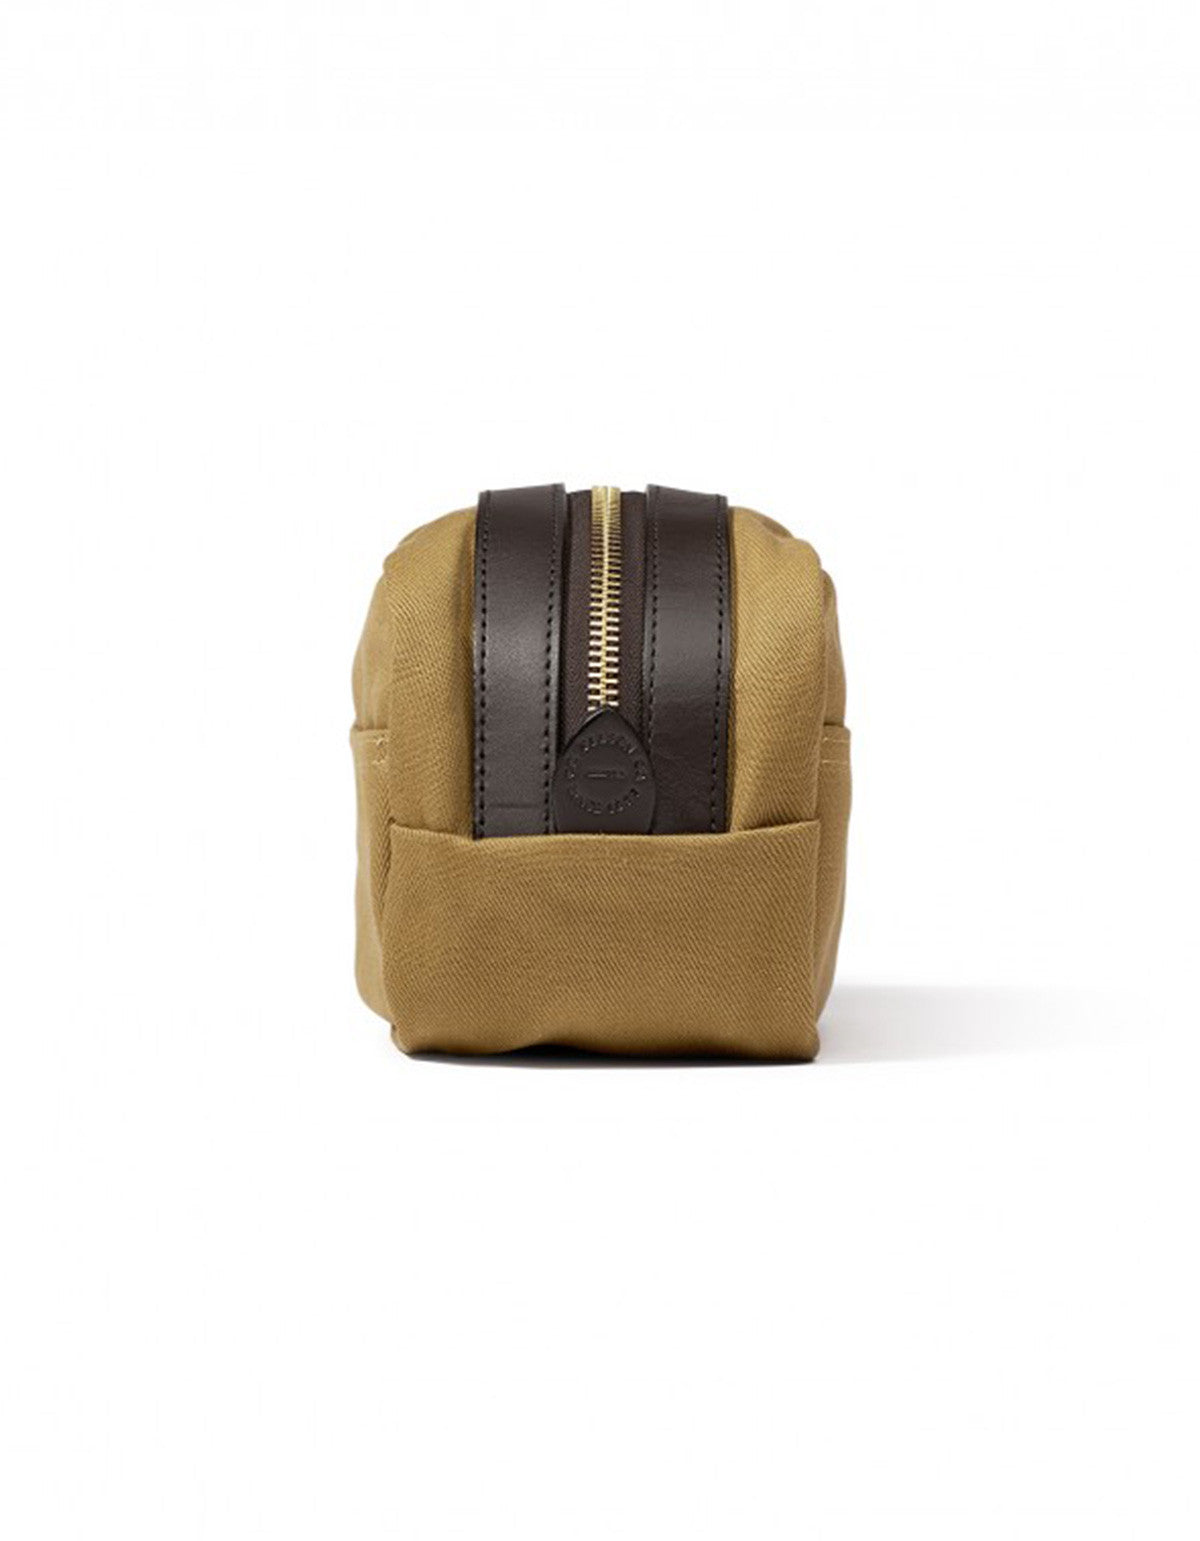 Filson Travel Kit Tan - Still Life - 3